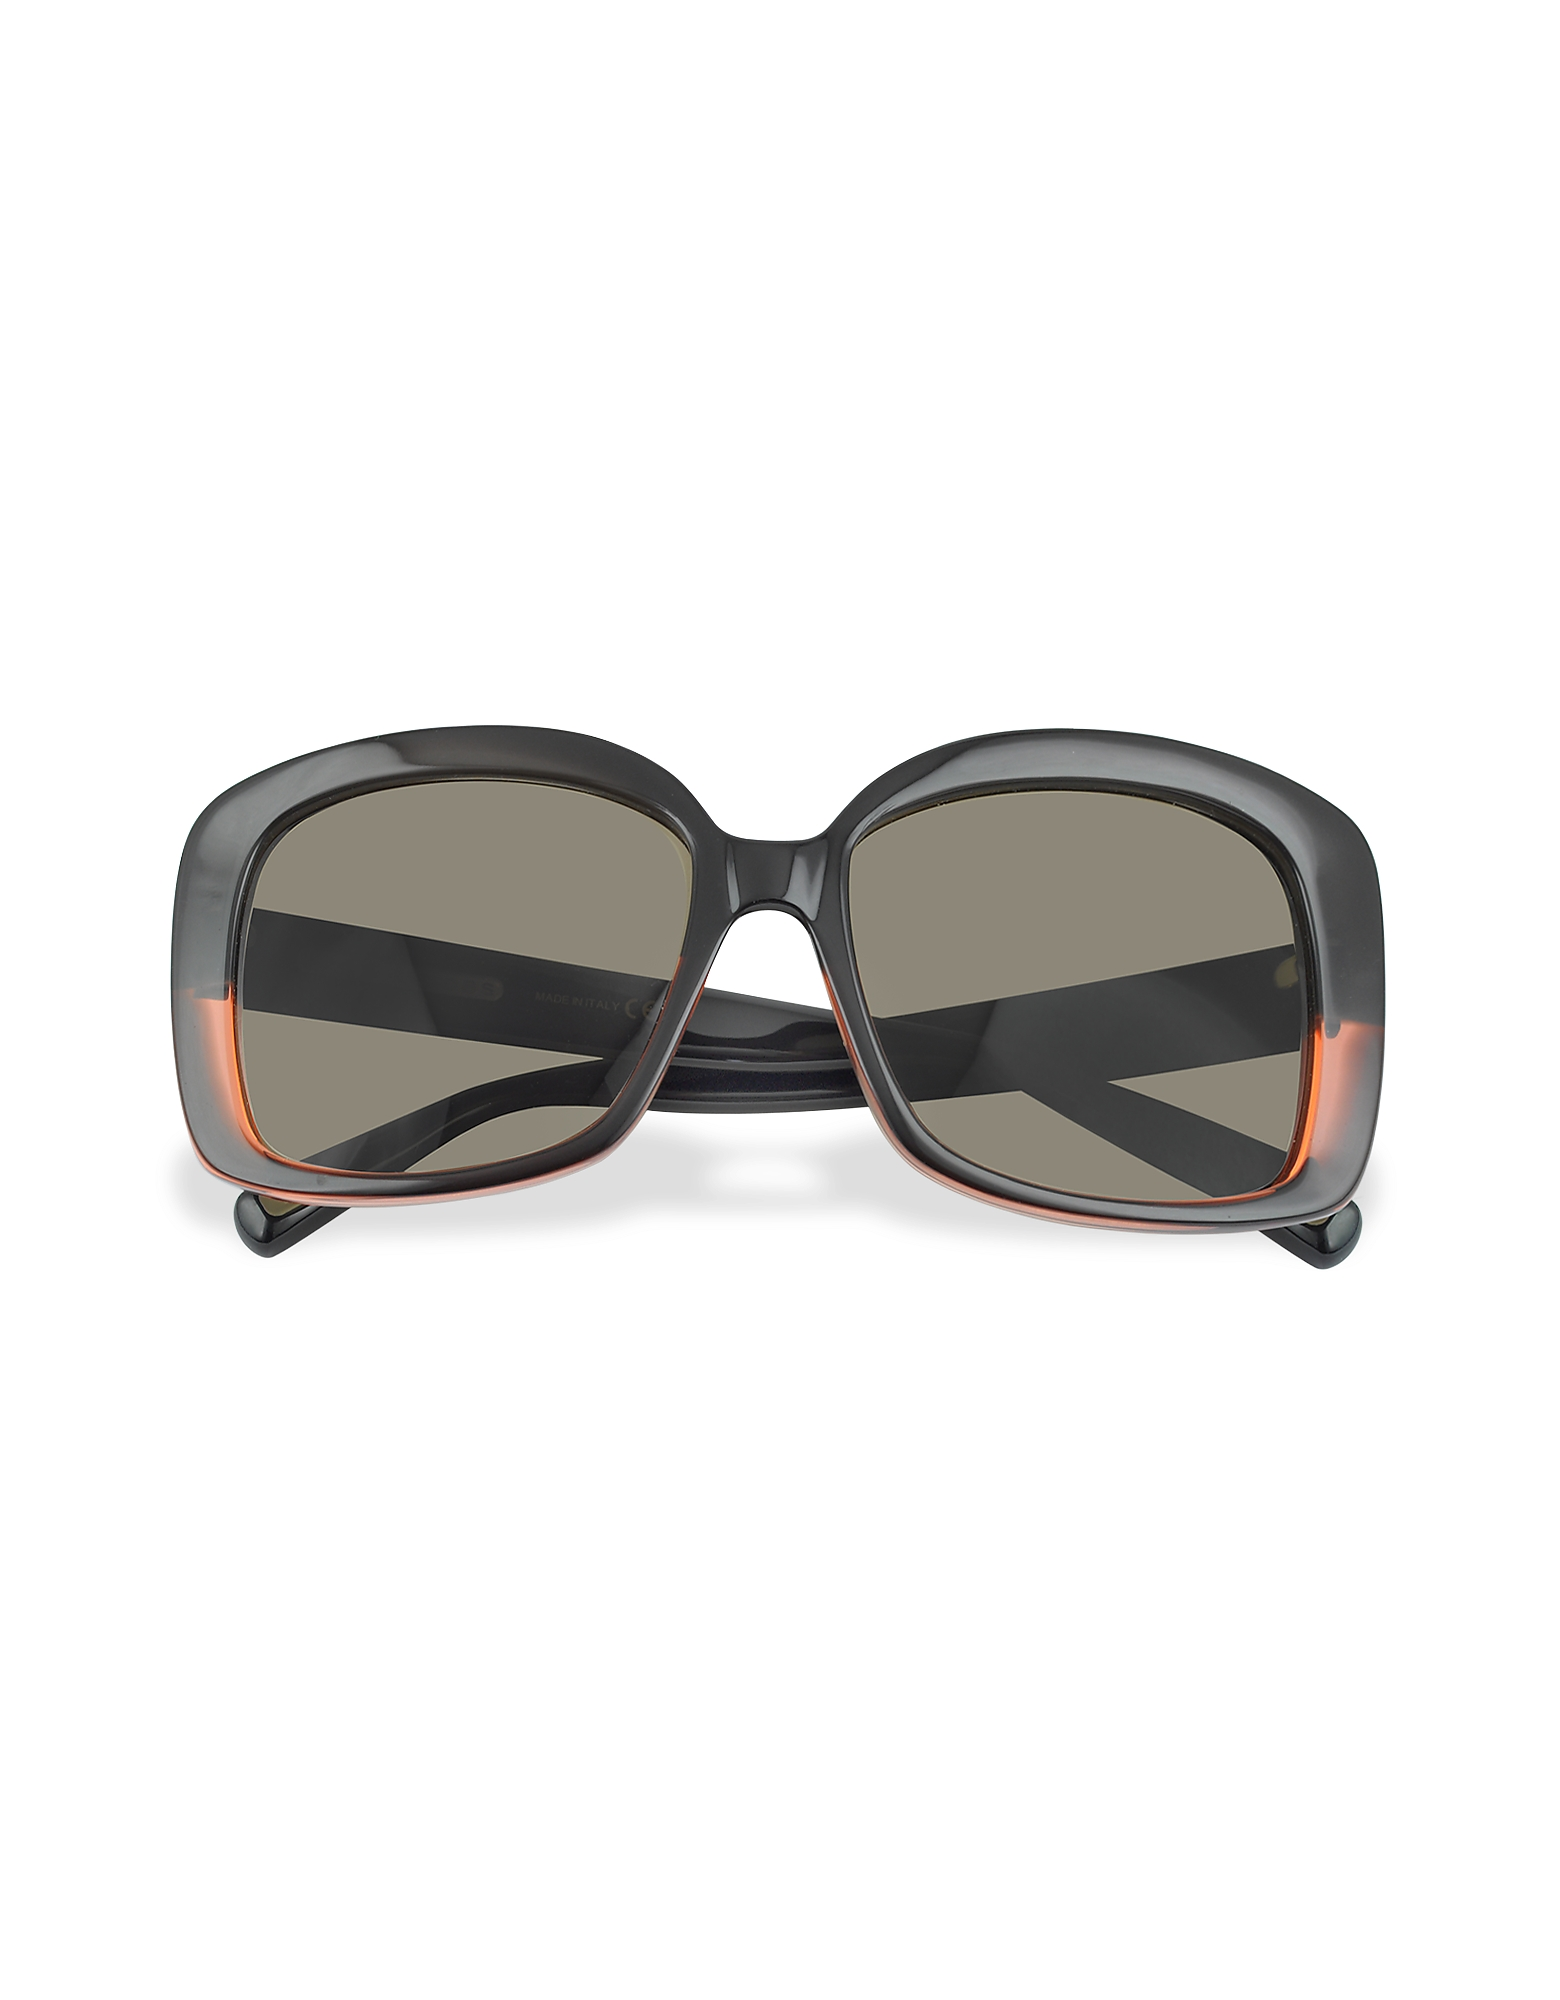 Marc Jacobs Sunglasses, Black and Red Square Sunglasses